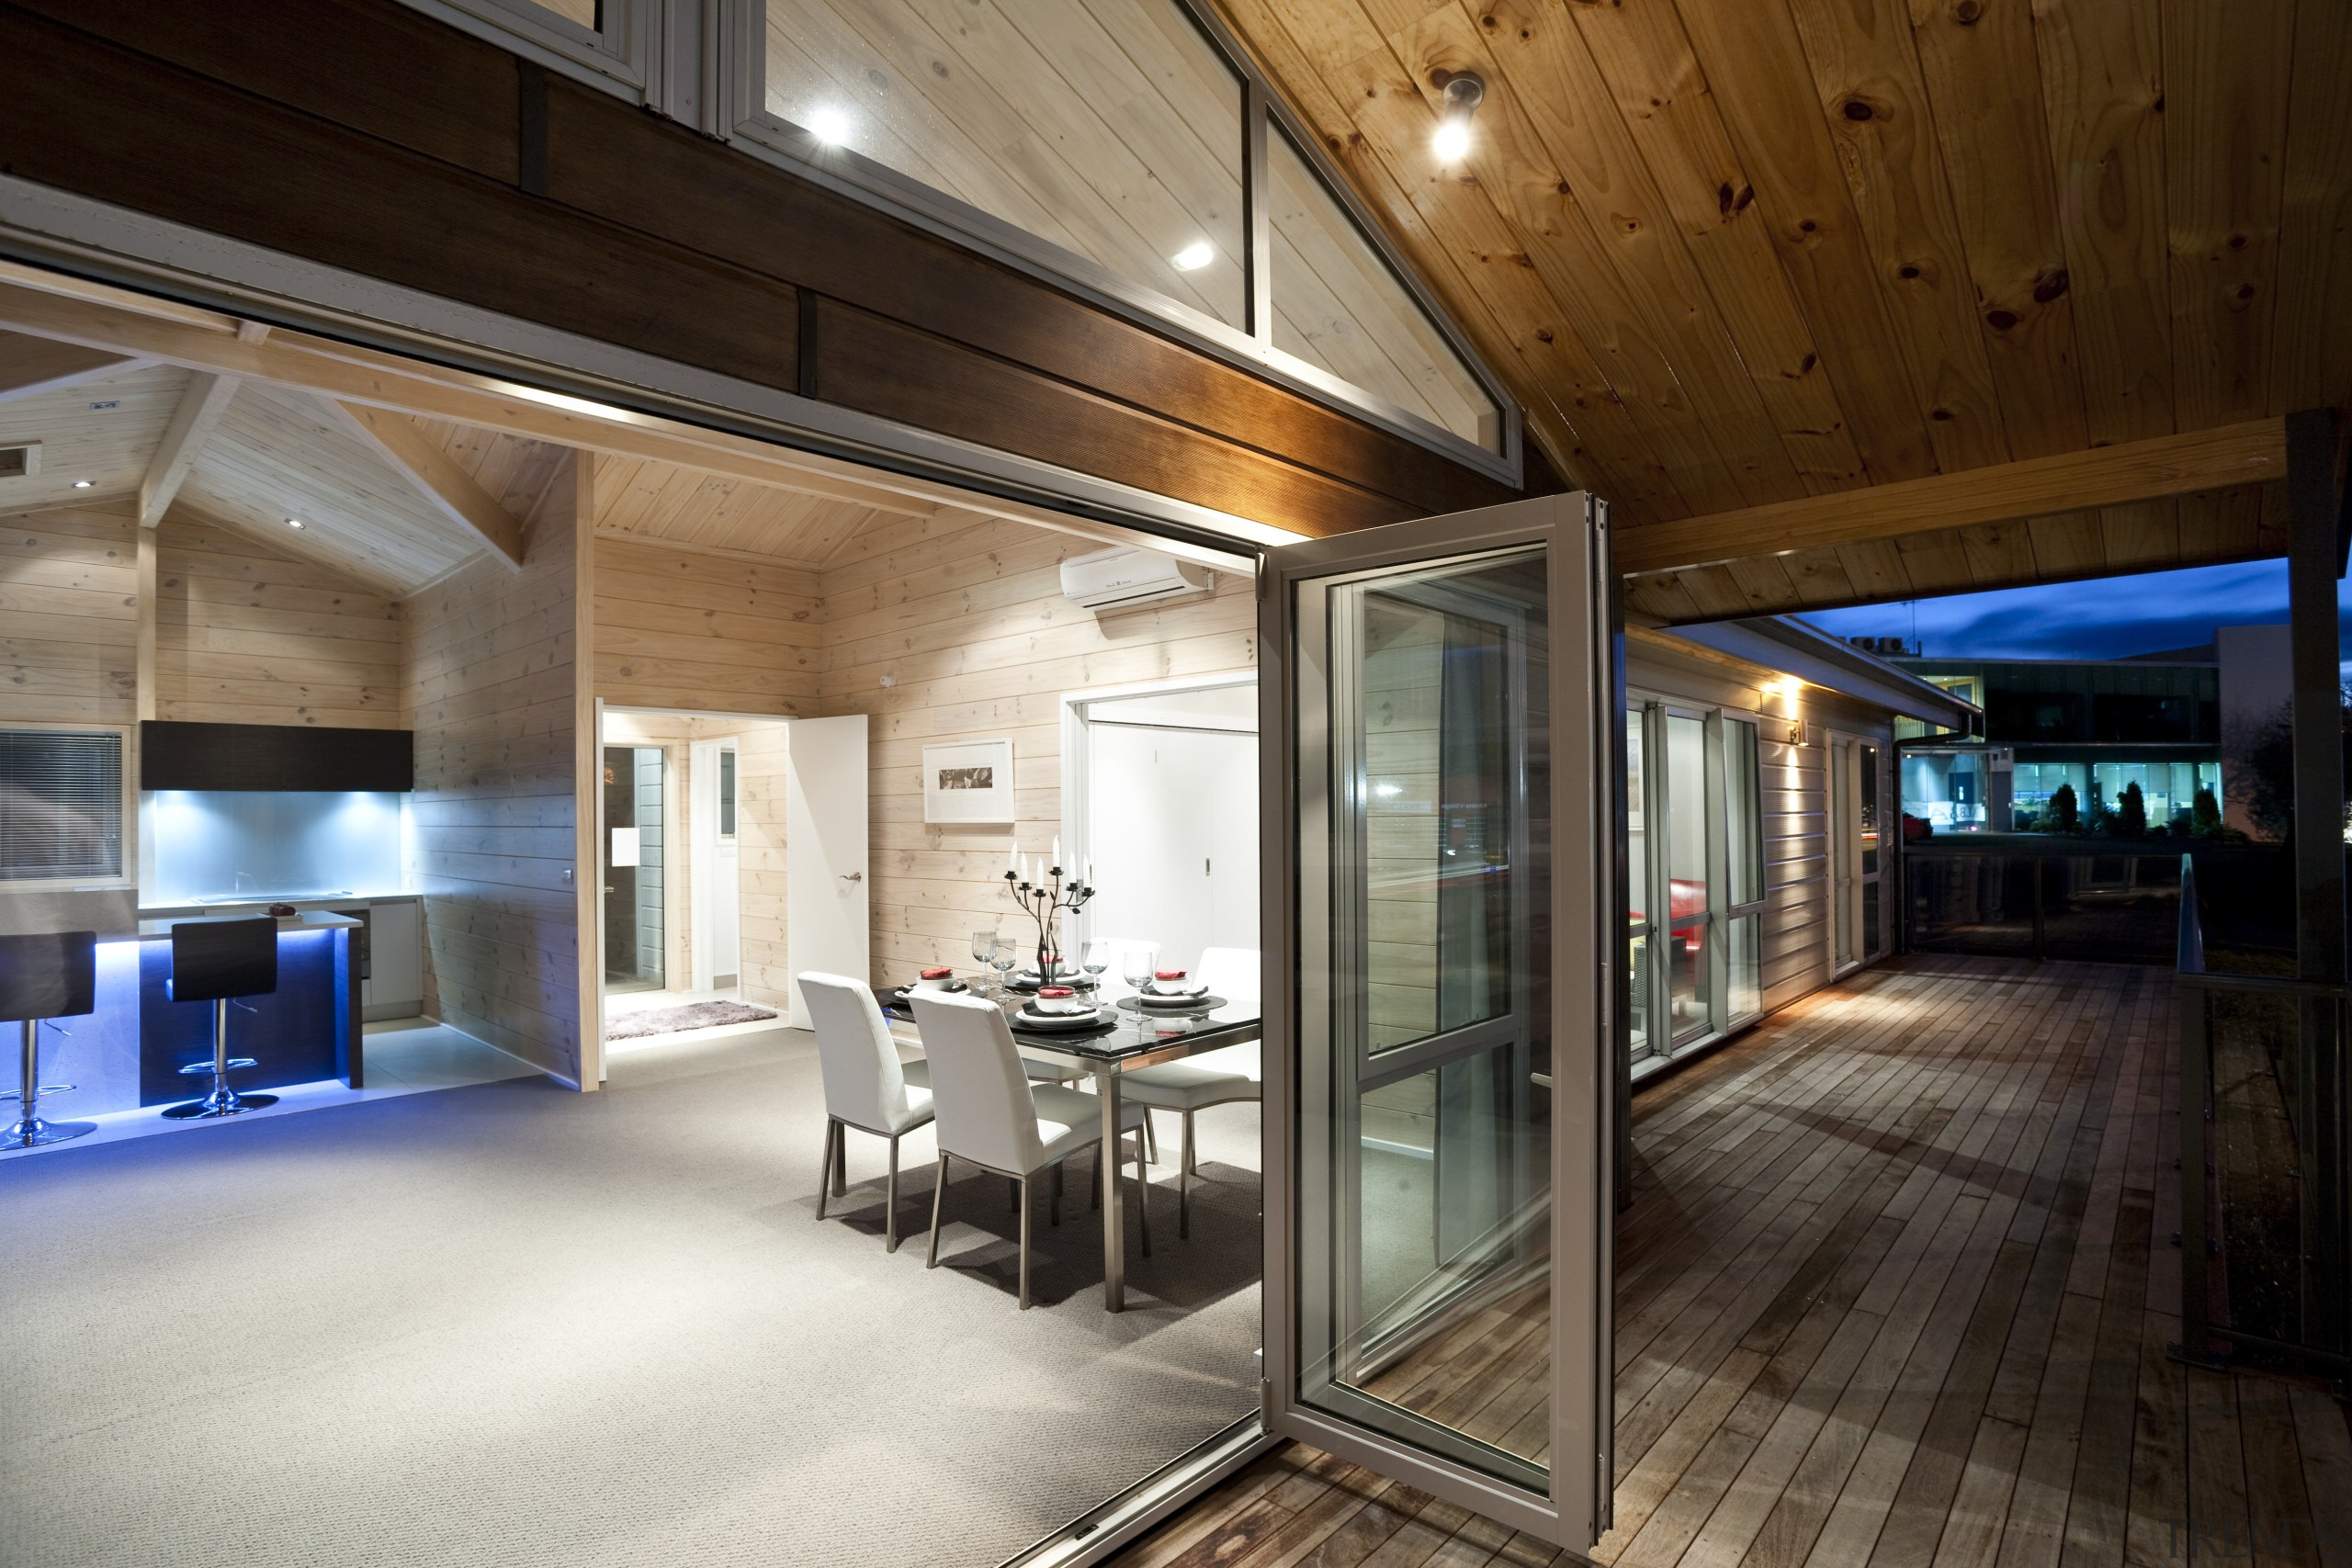 Interior view of this modern home - Interior architecture, ceiling, house, interior design, lobby, real estate, wood, brown